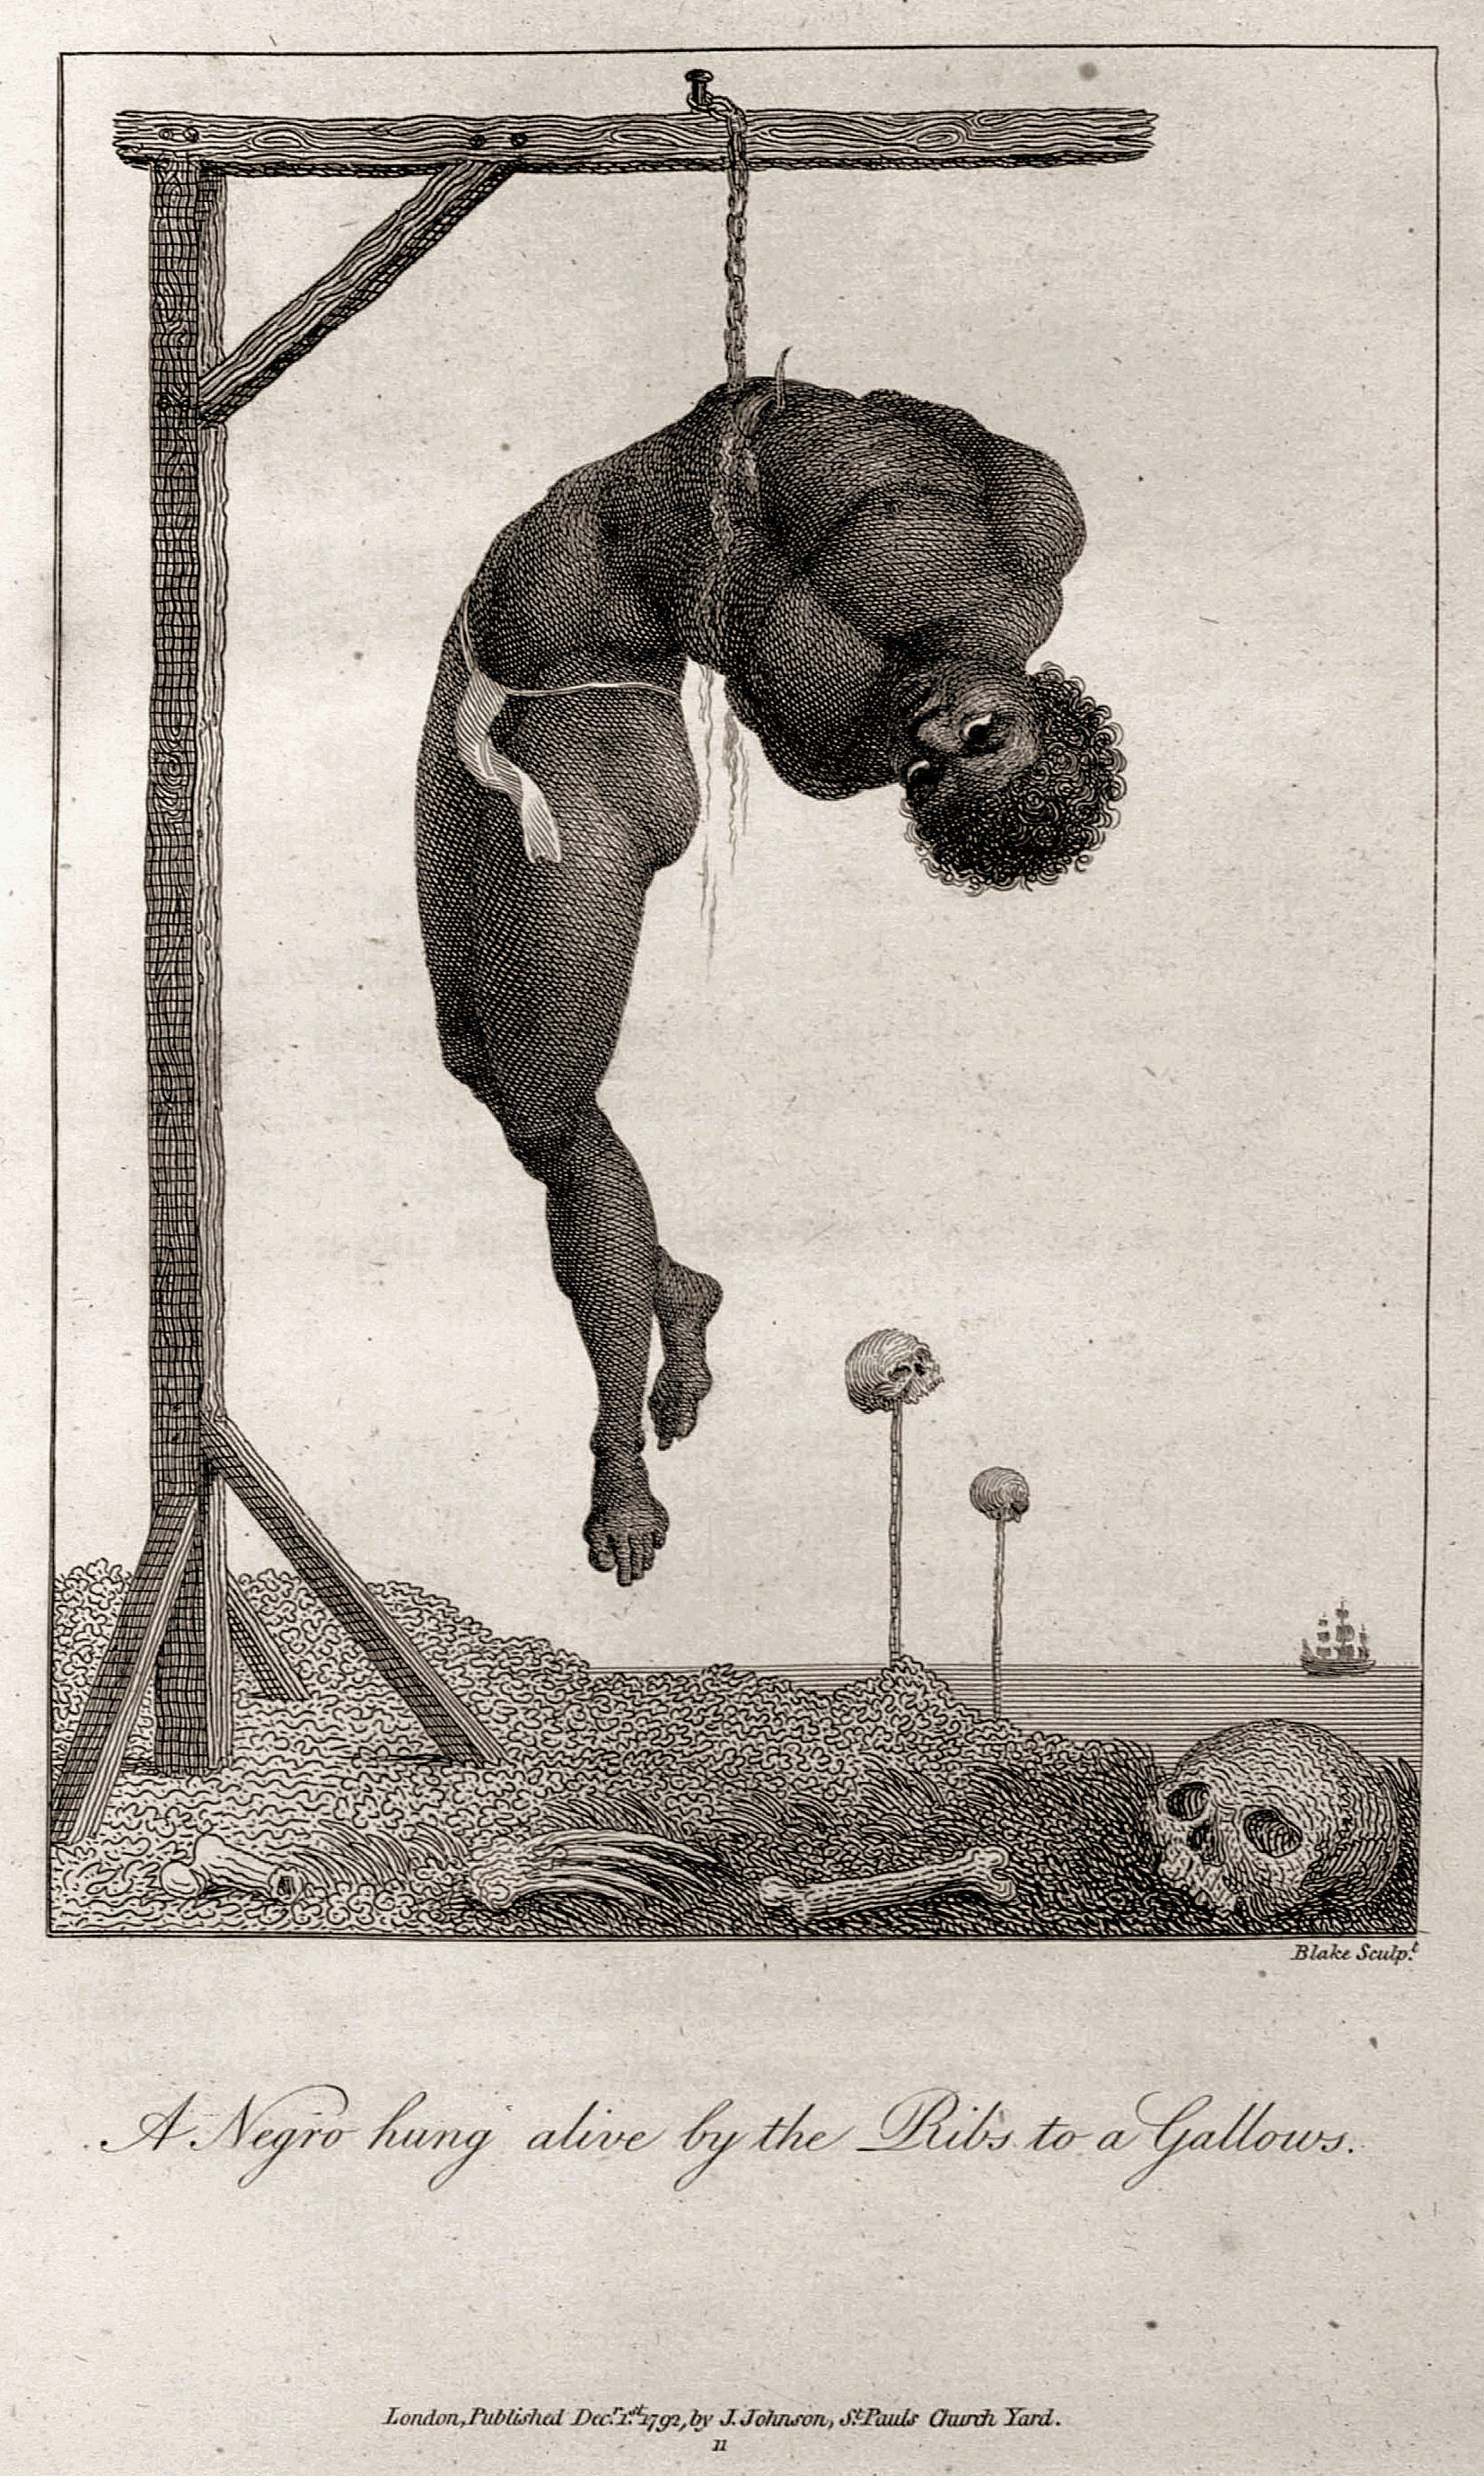 Blake Sculpt. 	A Negro hung alive by the Ribs to a Gallows. 	London, Published Dec.r 1.st 1792, by J. Johnson, St. Pauls Church Yard. 	11